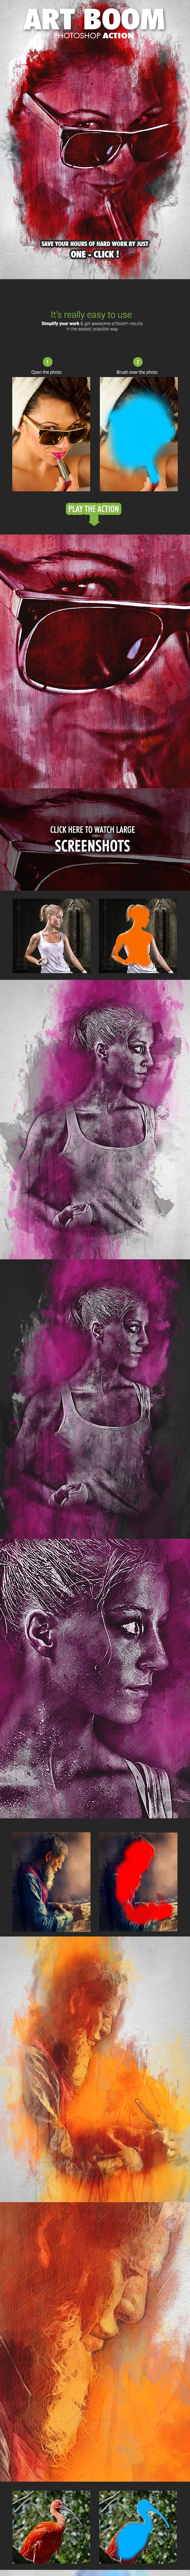 Art Boom Photoshop Action - Photo Effects Actions